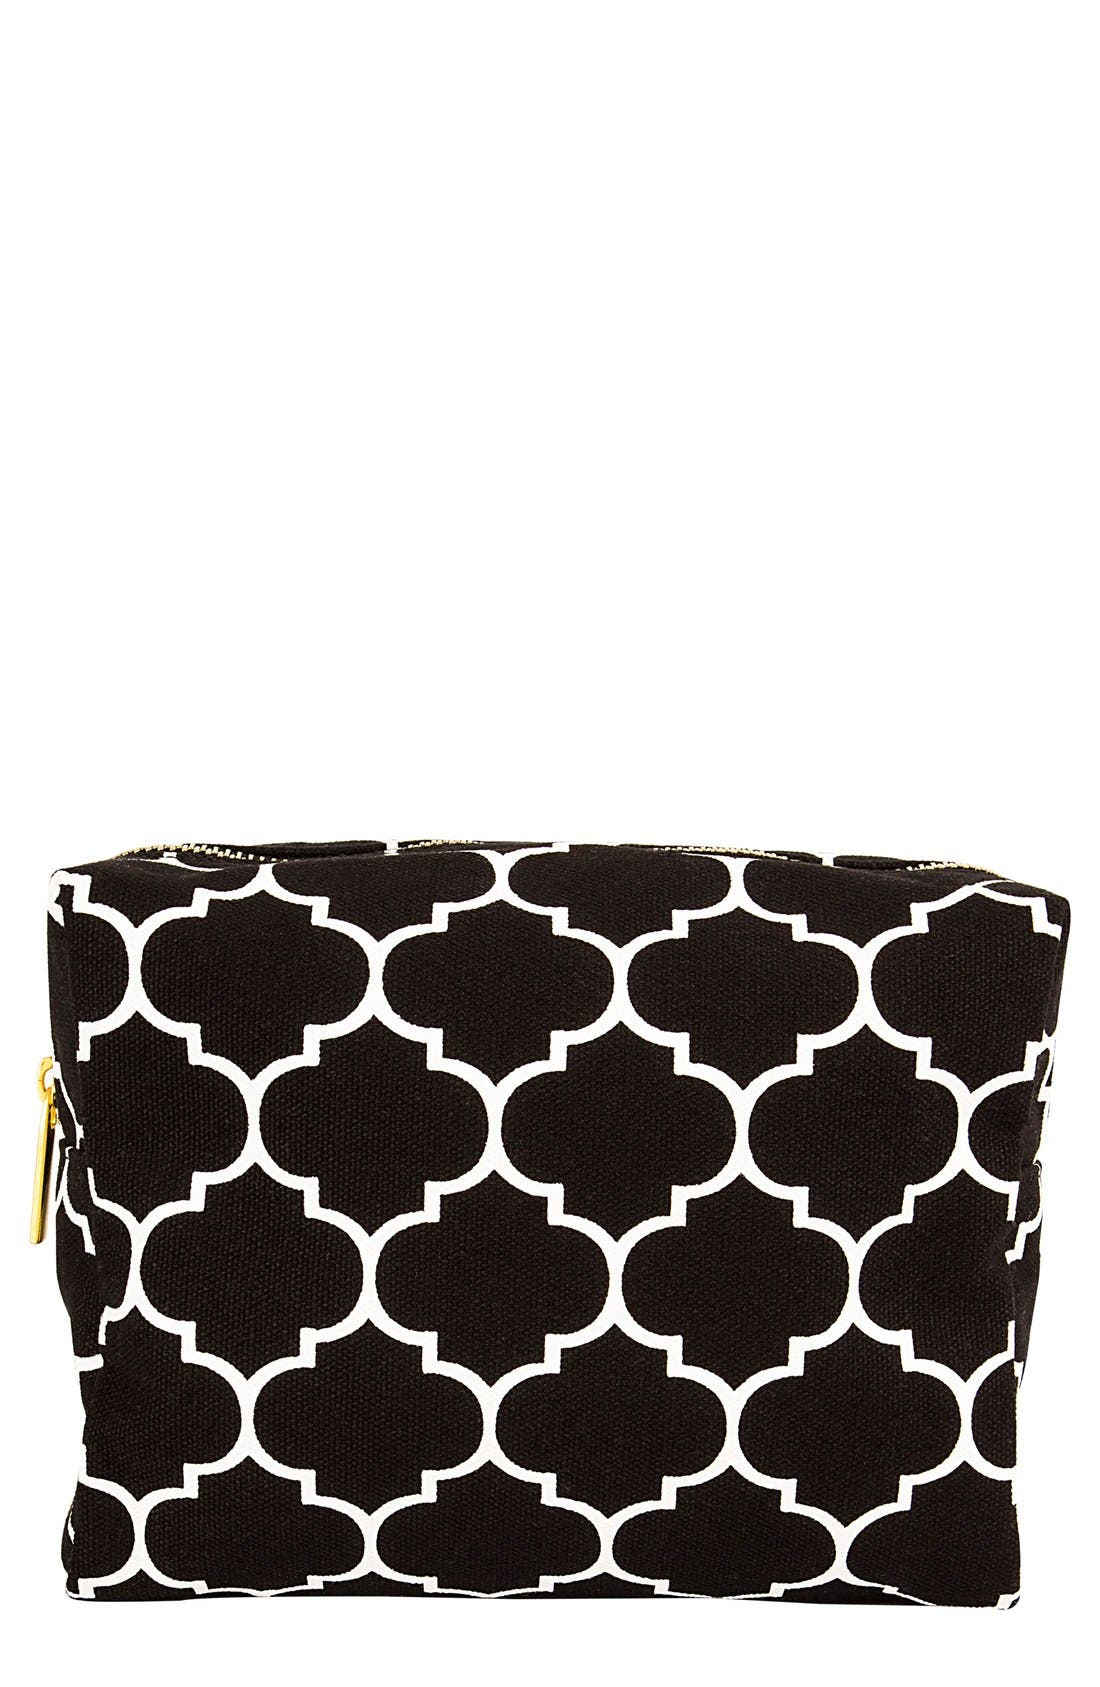 Monogram Cosmetics Bag,                             Main thumbnail 1, color,                             001